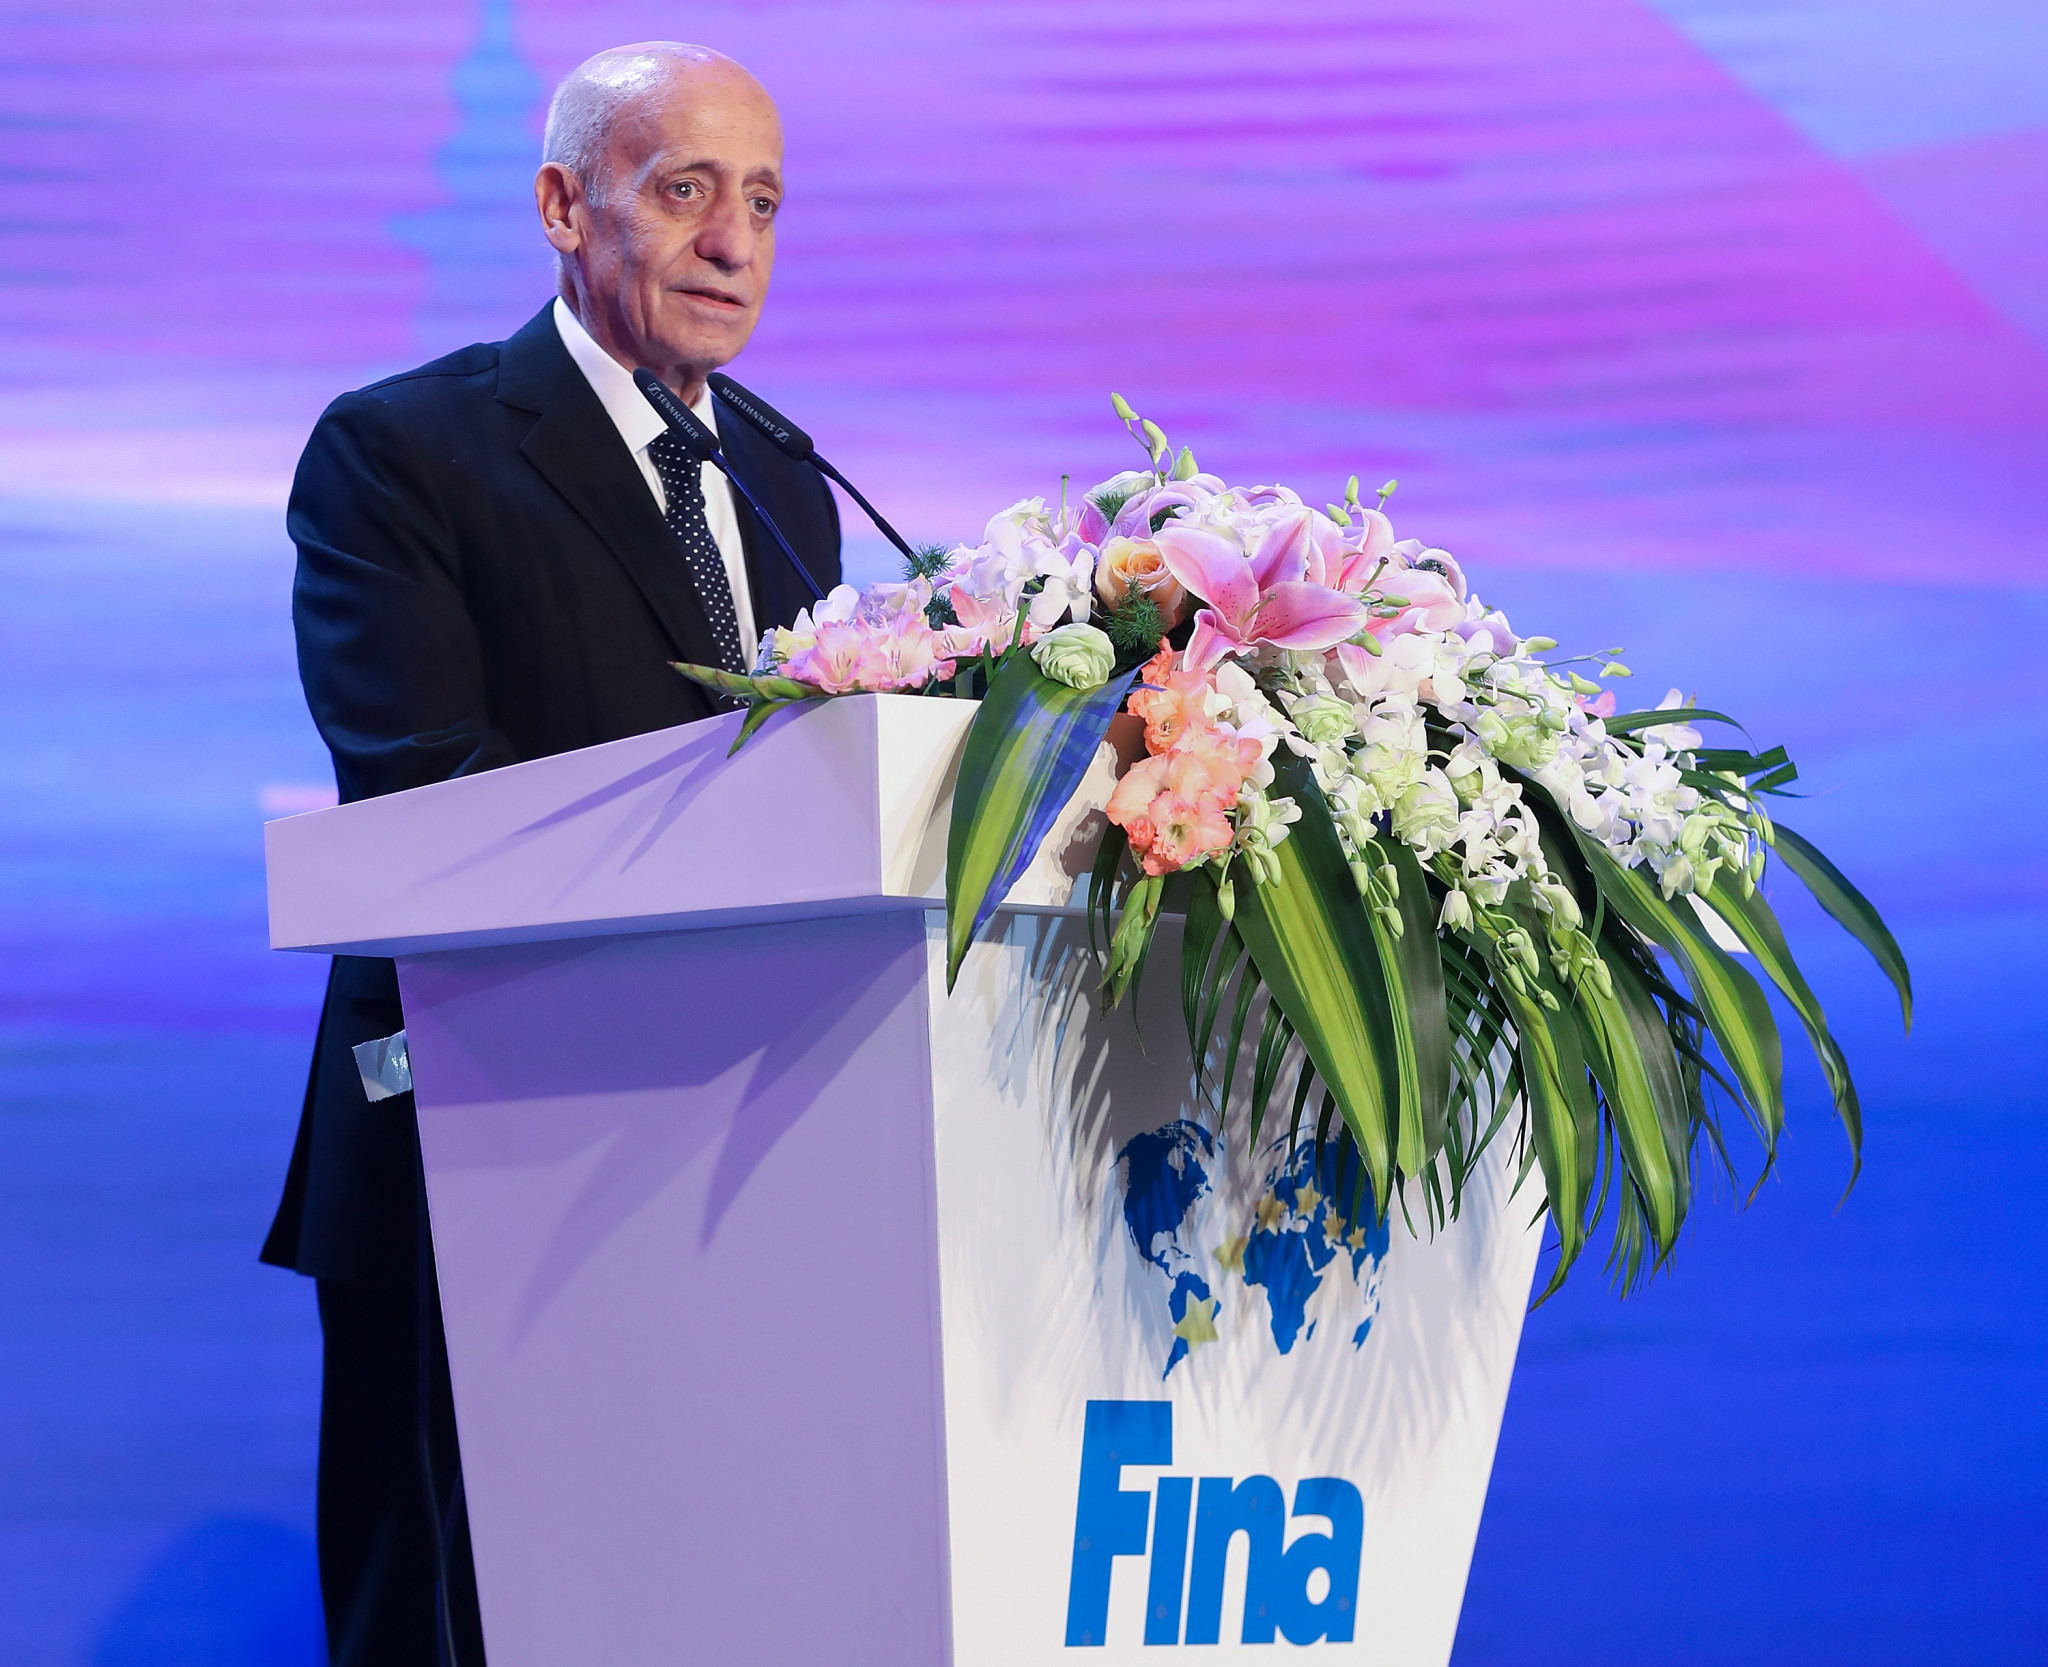 Julio Maglione, 85, has led the International Swimming Federation for the past 12 years ©Getty Images